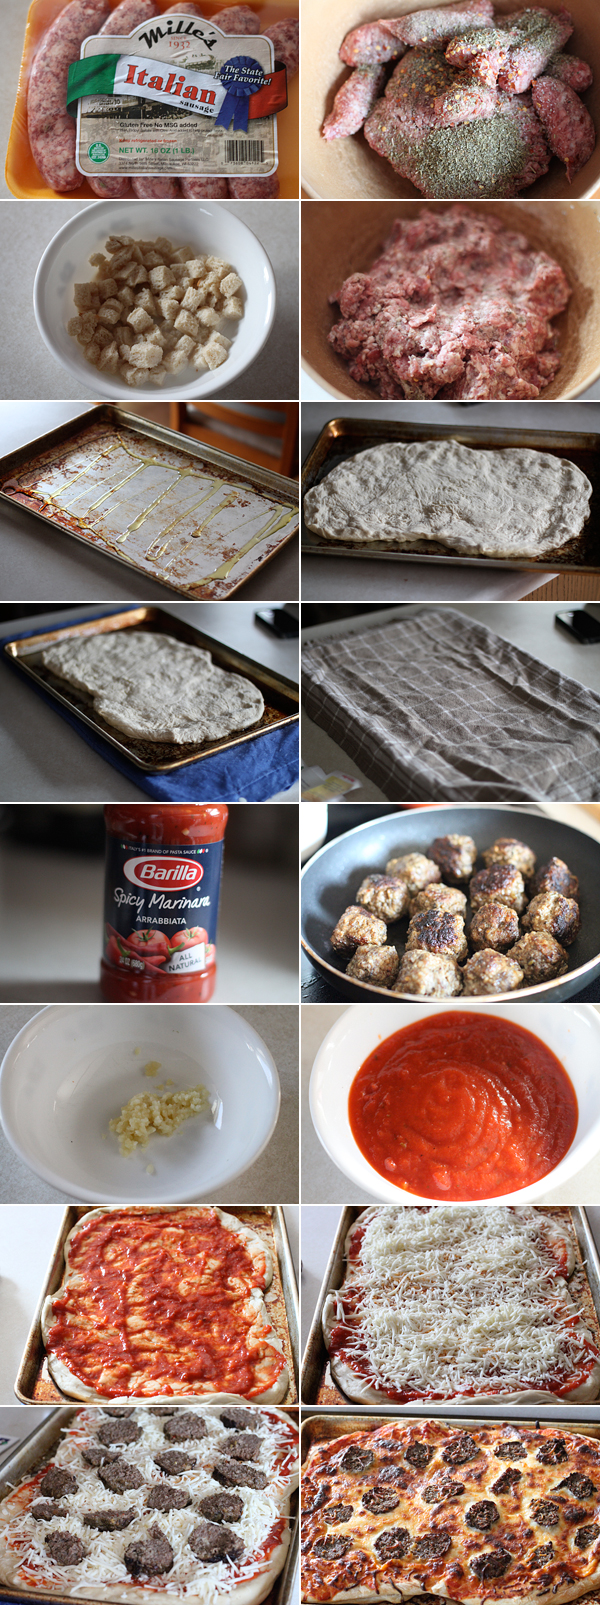 How to make a meatball pizza recipe